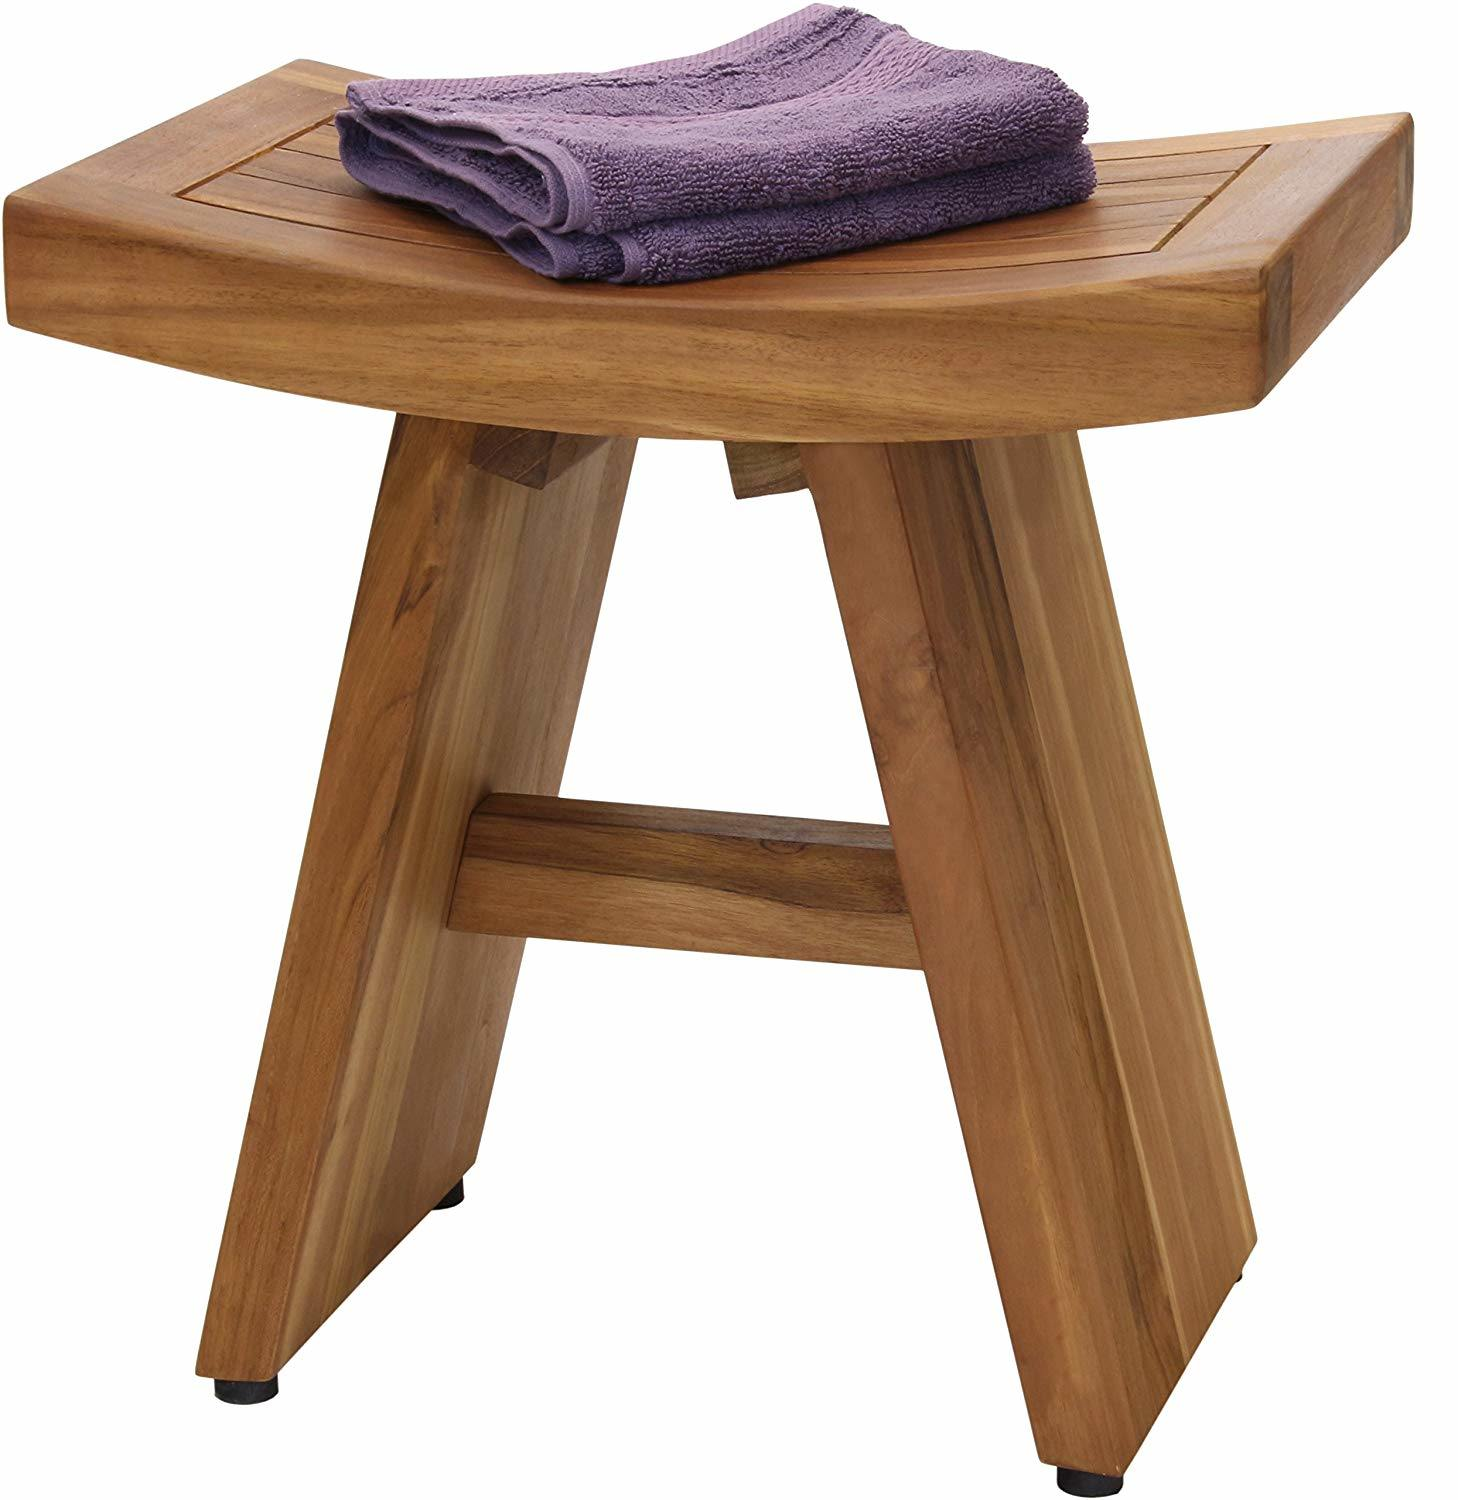 China 100 Deluxe Chair Seat Bamboo Bathtub Shower Bench China Bamboo Bathtub Shower Bench Children Tool